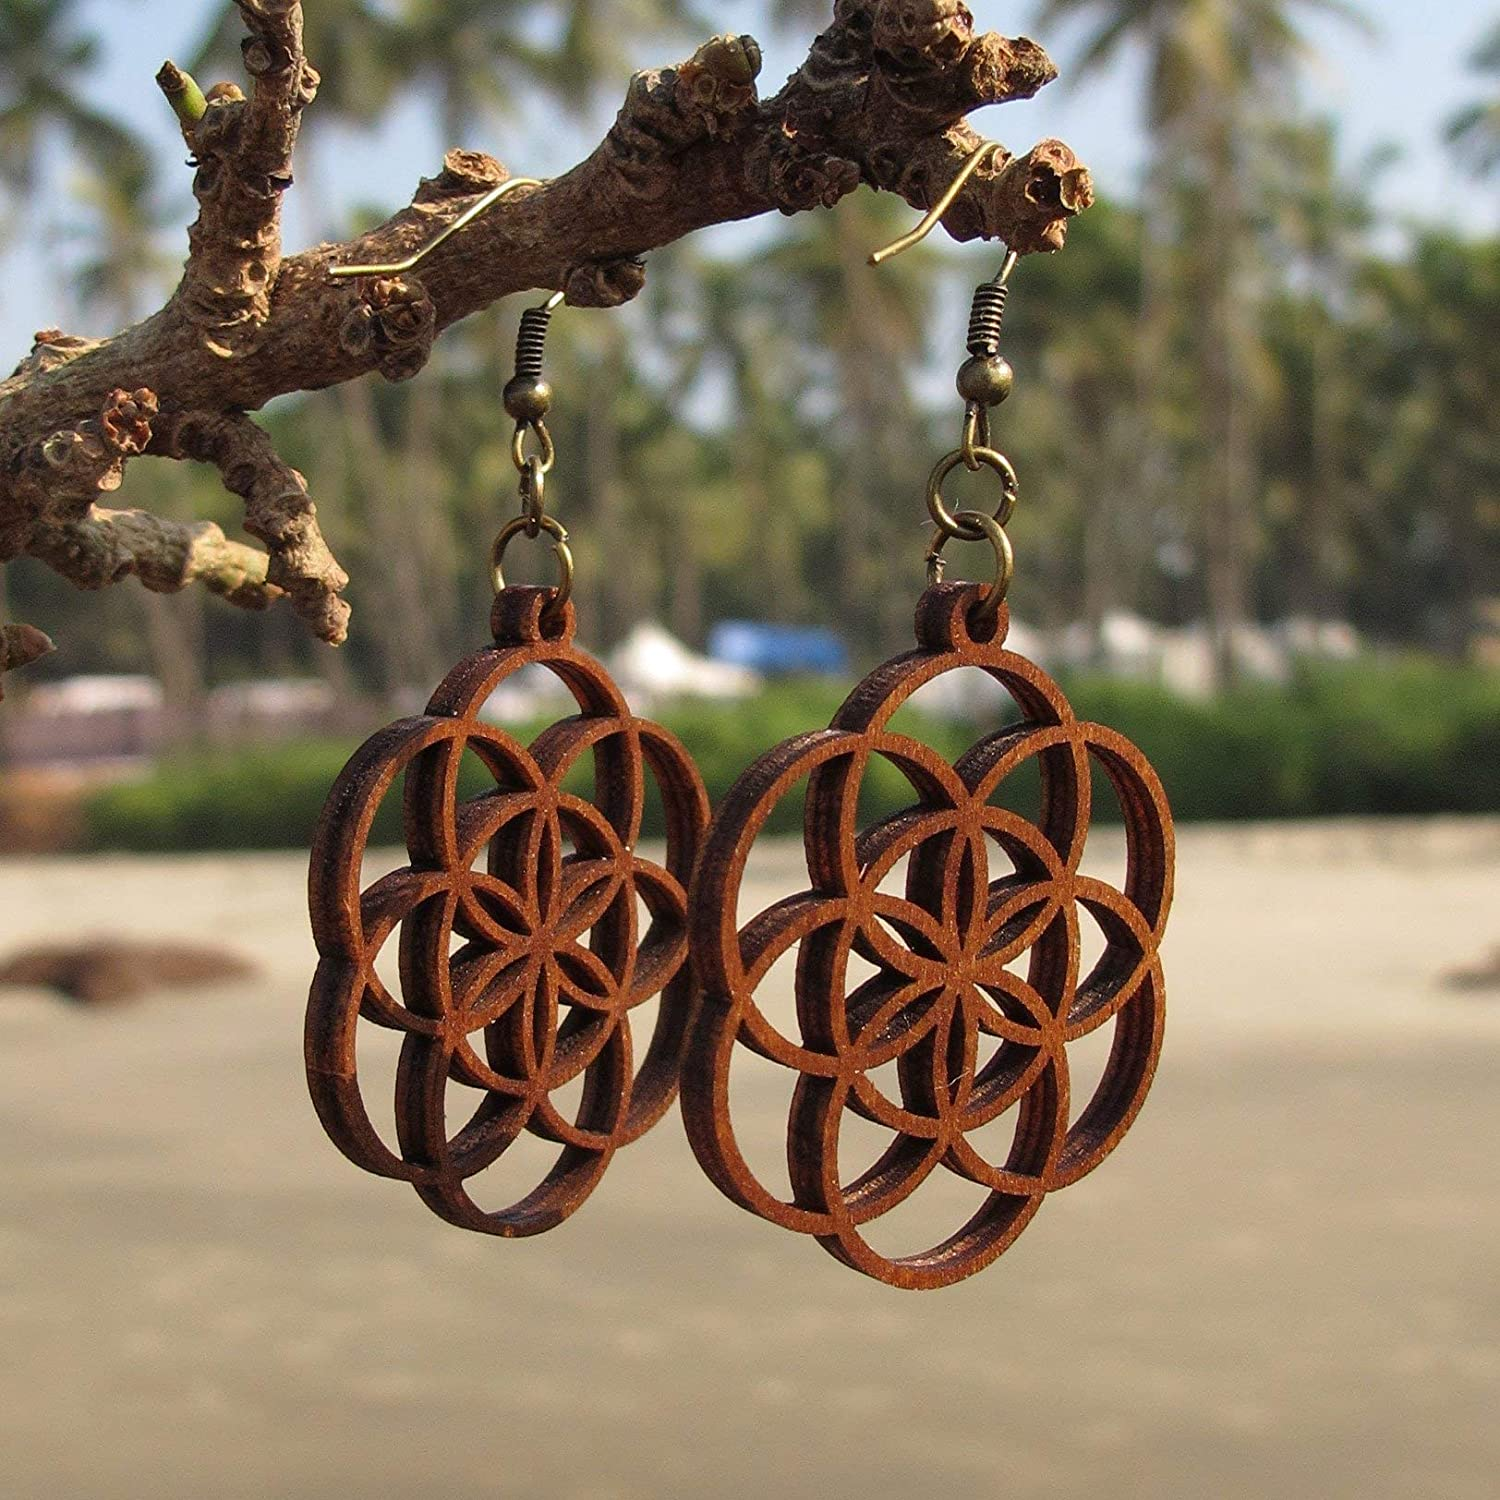 Seed of Life Earrings - Wooden earrings - Sacred Geometry Jewelry - Bohemian Earrings